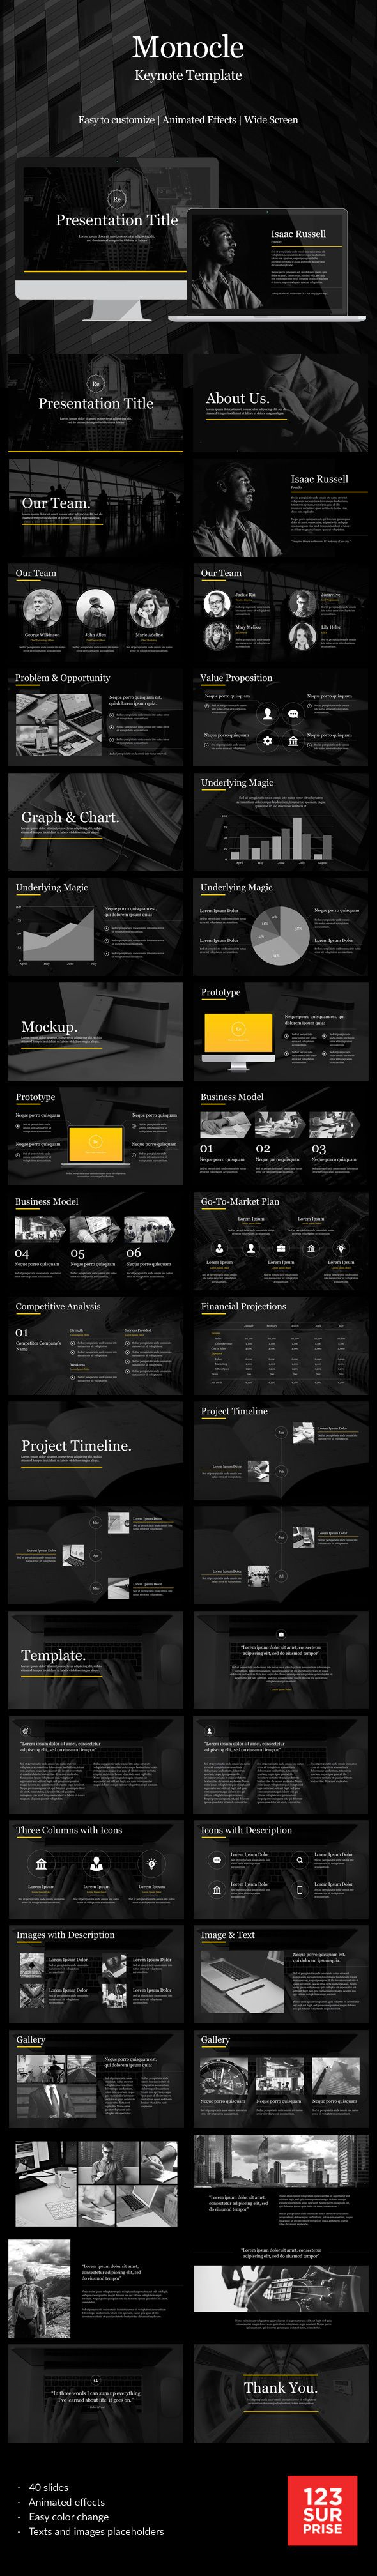 Monocle Keynote Template #design #slides Download: http://graphicriver.net/item/monocle-keynote-template/14365198?ref=ksioks